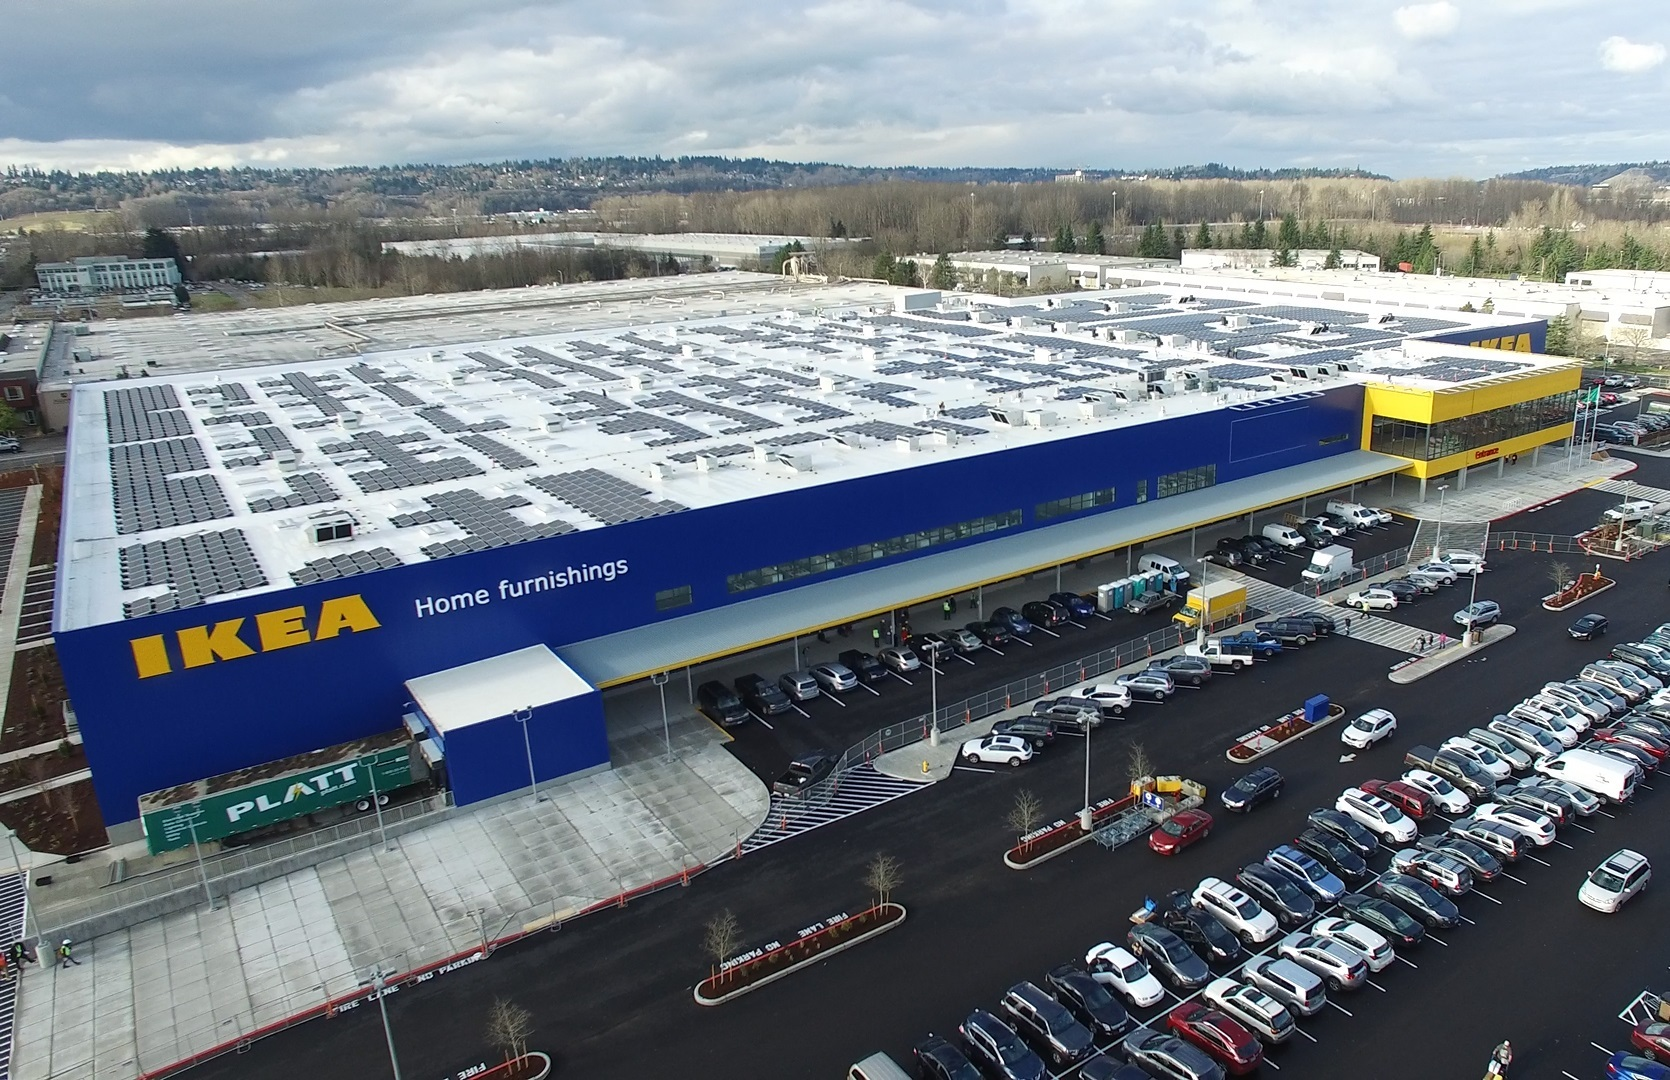 This array represents the 45th solar project for IKEA in the US, contributing to the IKEA solar presence atop nearly 90% of its US locations. Source: Business Wire